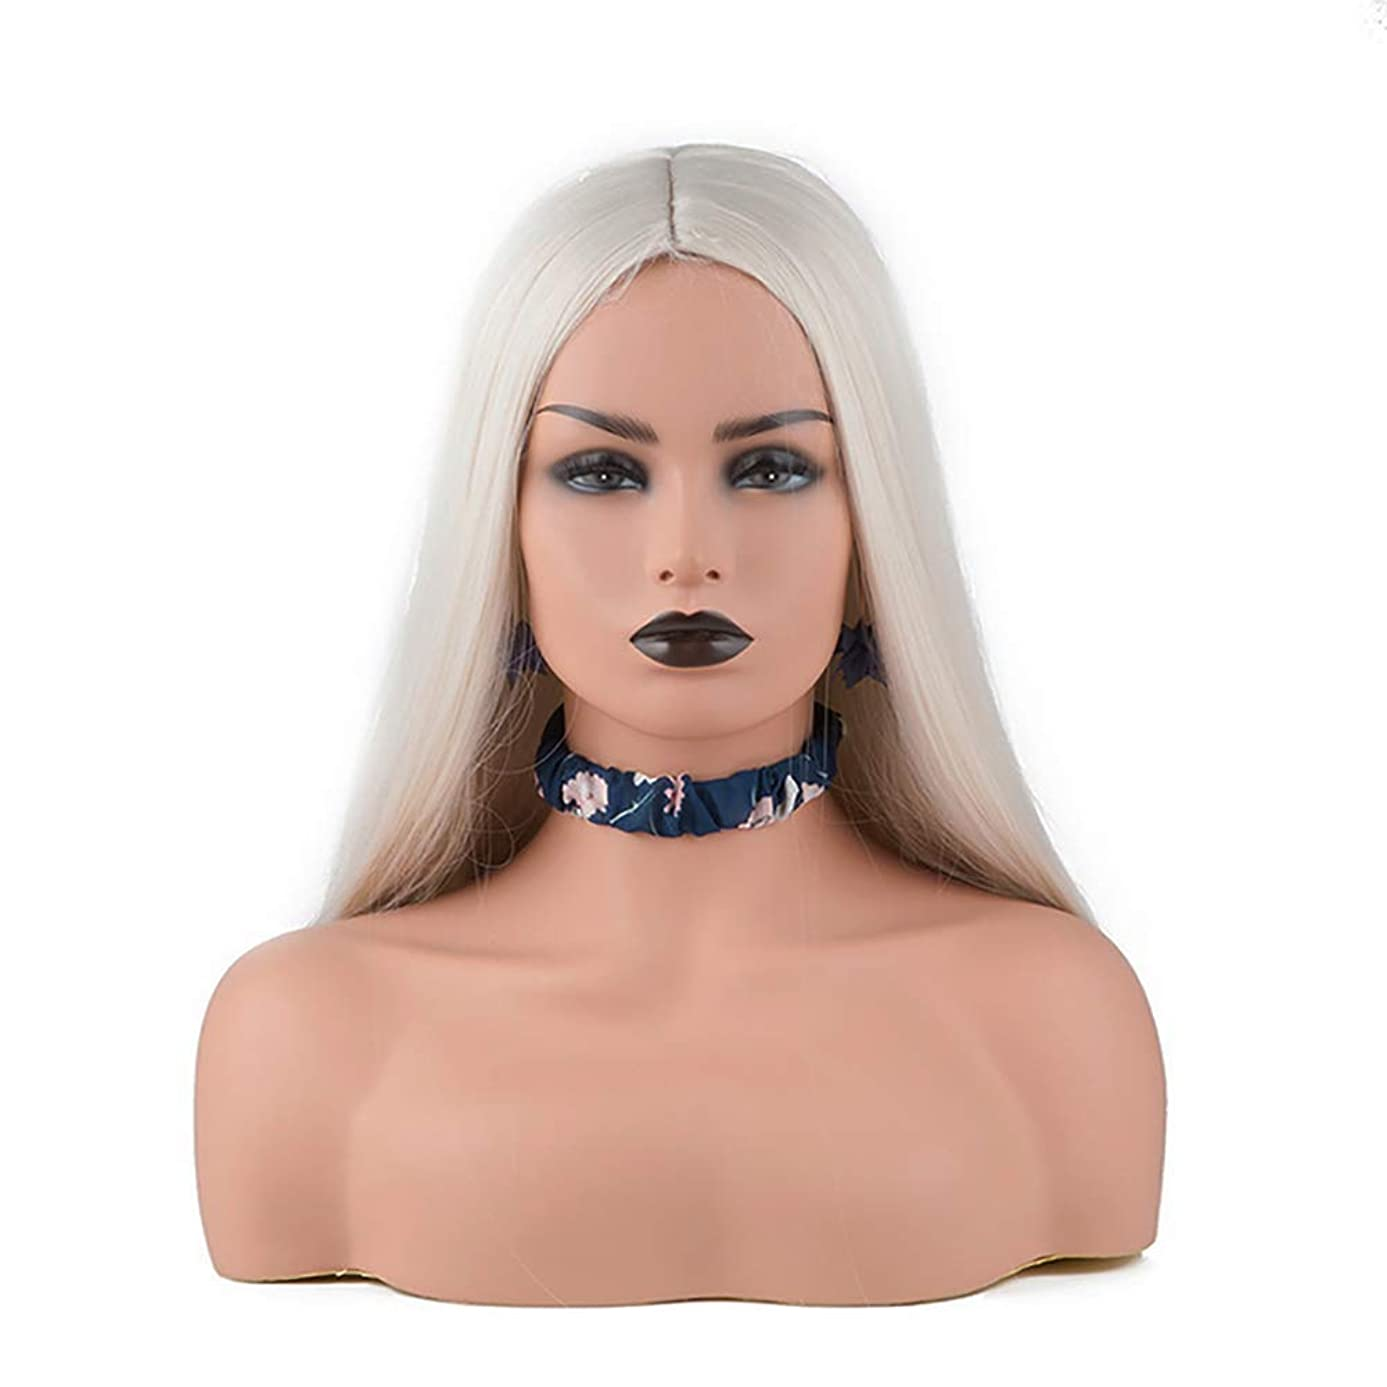 Mannequins Head, Mannequin Female Head Model for Display Adjustable Tripod Stand Head Stand for Displaying Wigs Hats Jewelery and Scarves